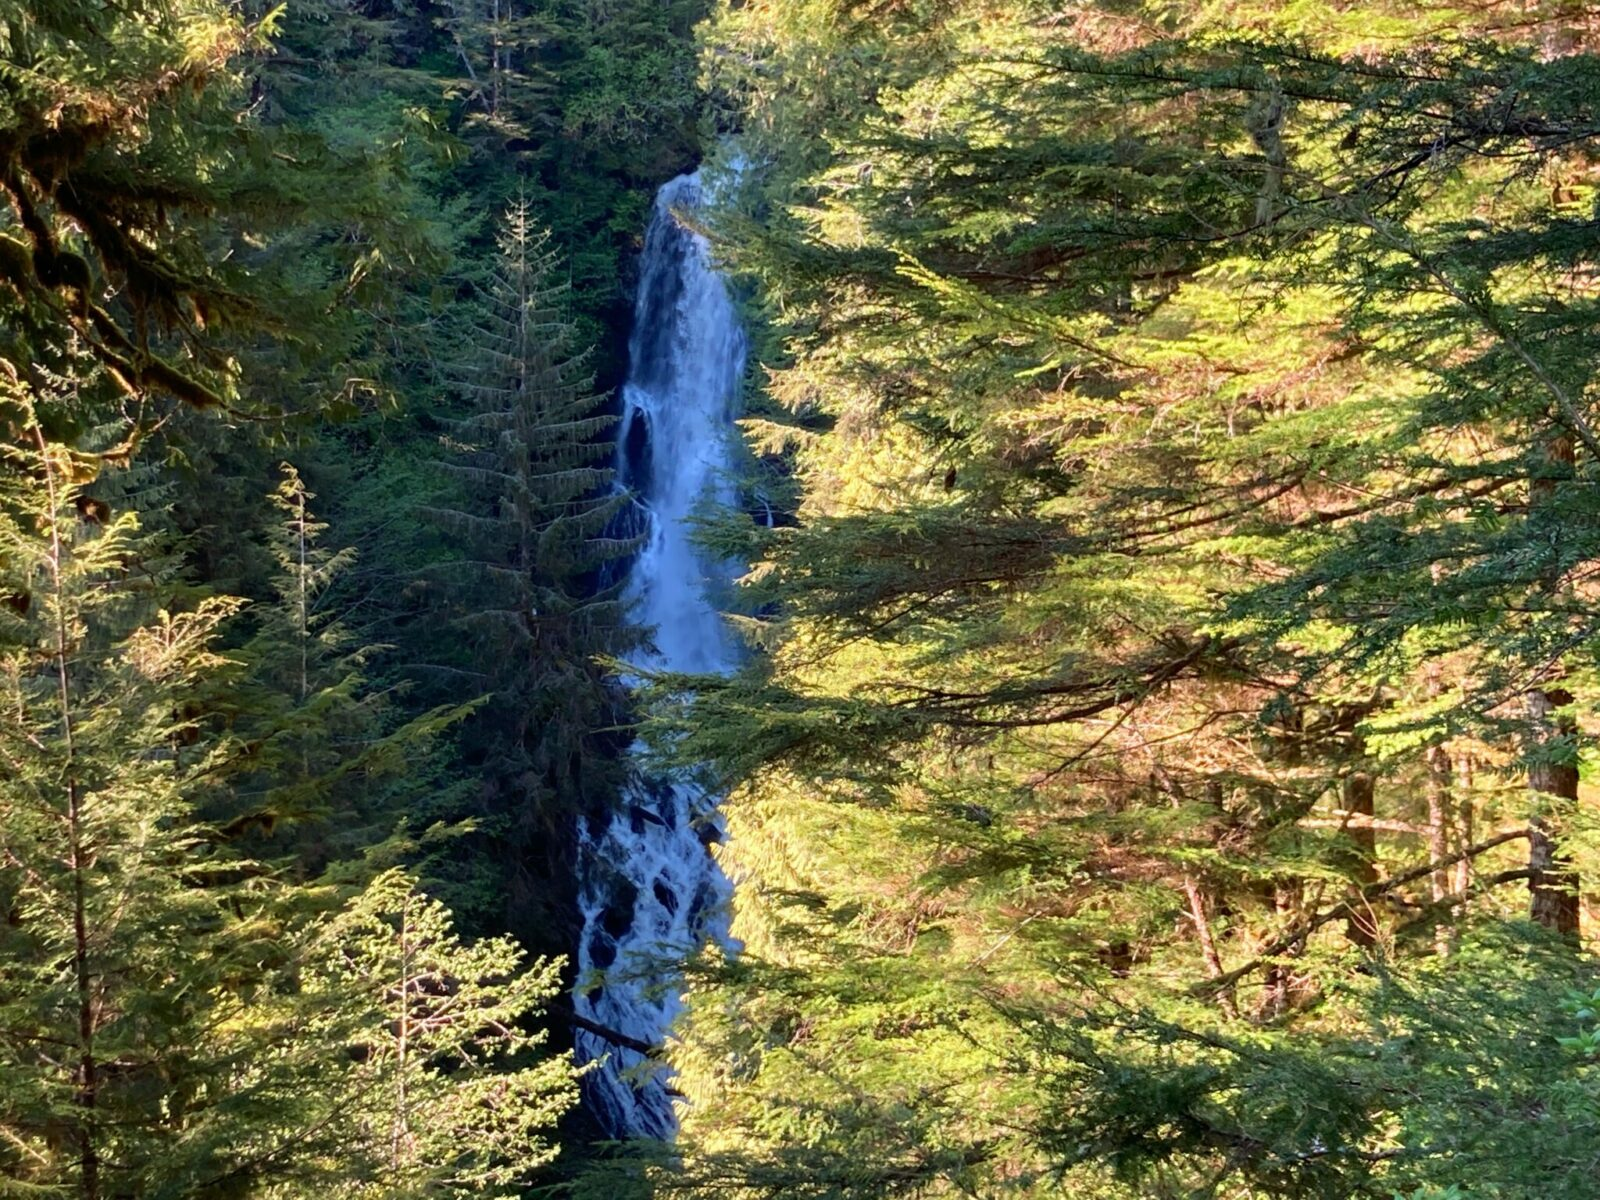 A waterfall falls straight down hundreds of feet through a forest